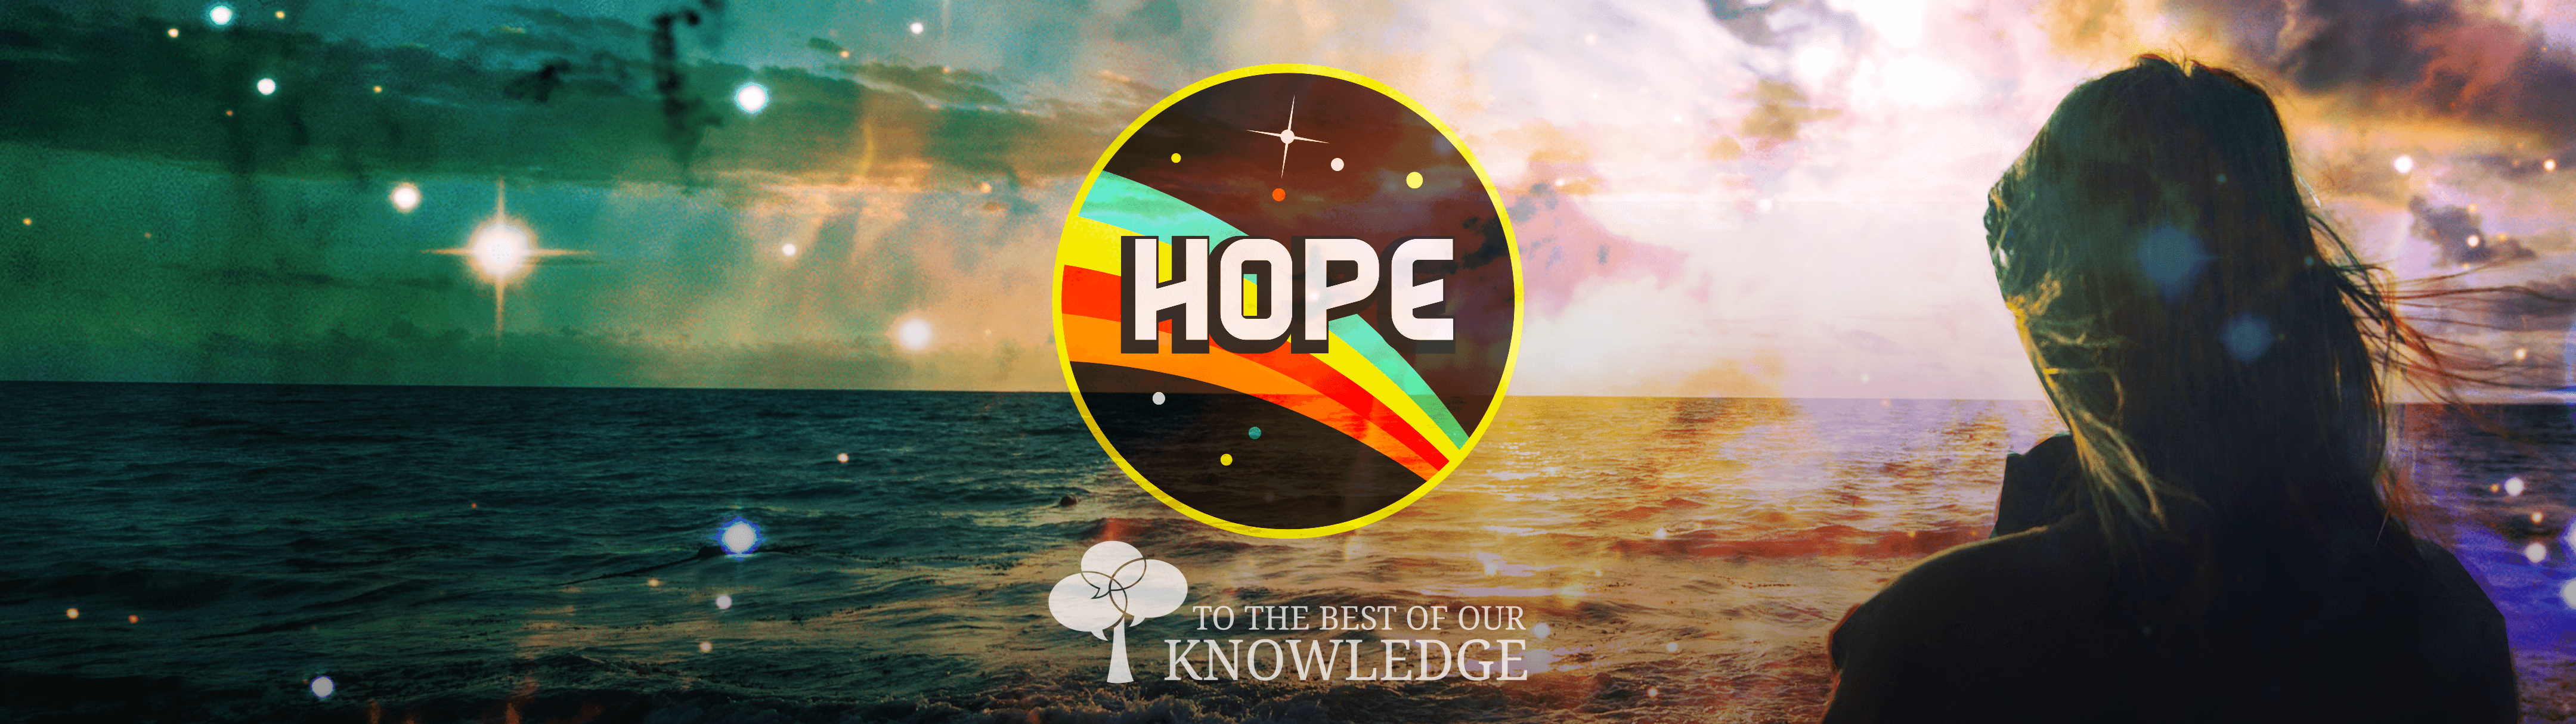 HOPE:A Three-Part Series